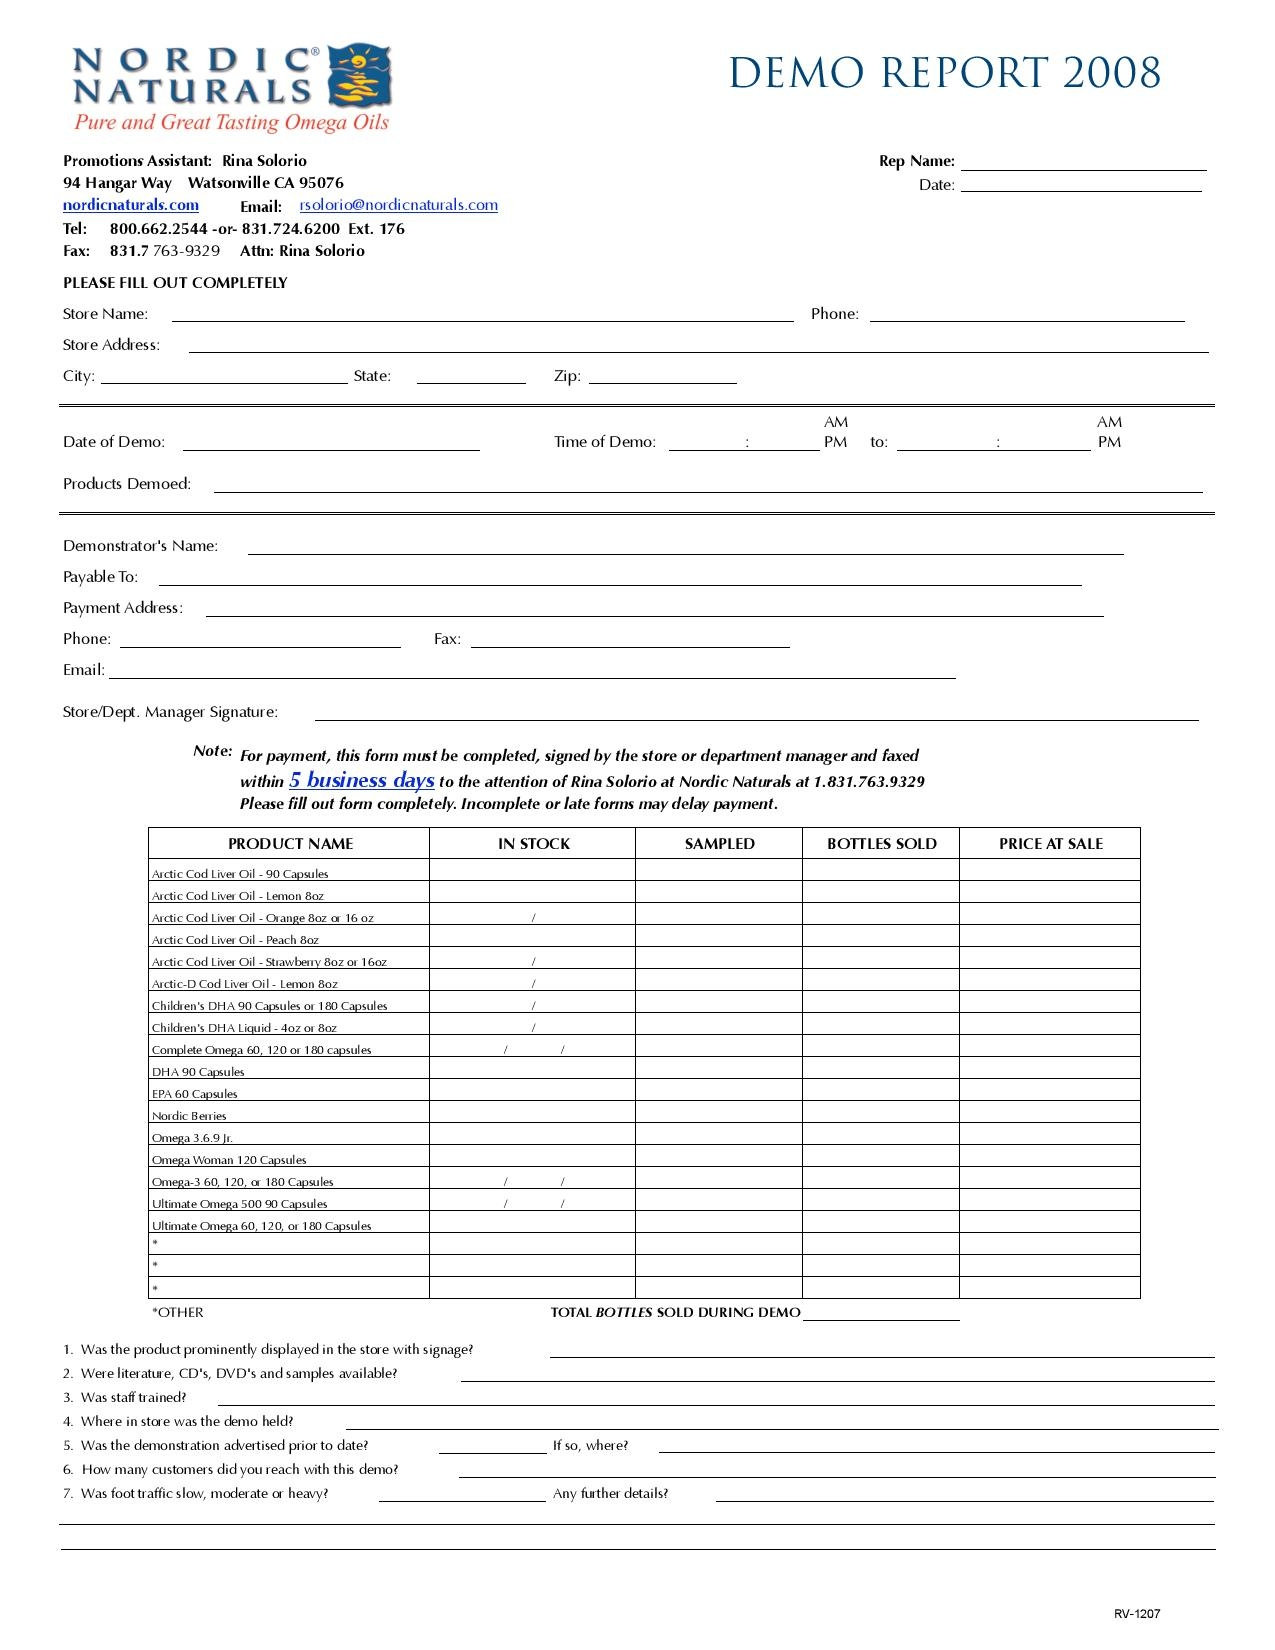 demo report form page 001